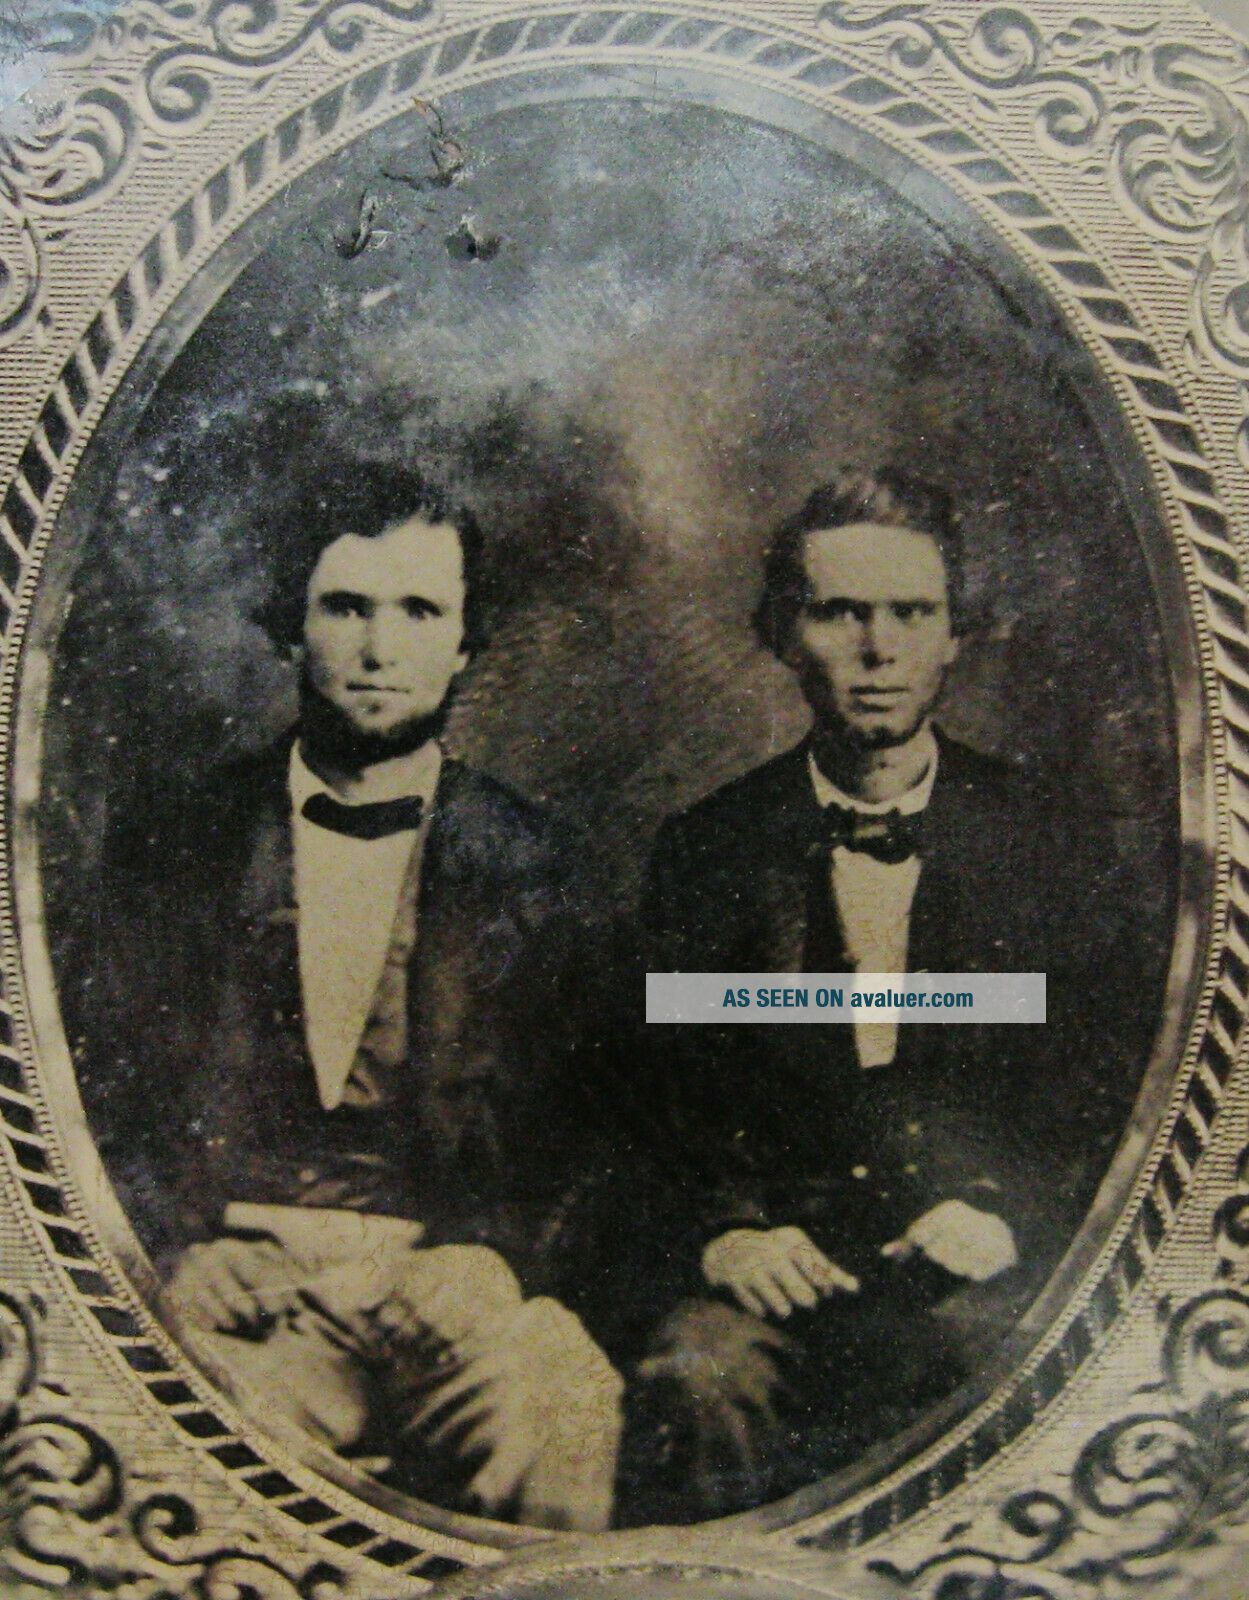 ANTIQUE TINTYPE PHOTO OF 2 HANDSOME DAPPER YOUNG MEN TAKEN FROM AN EARLIER IMAGE